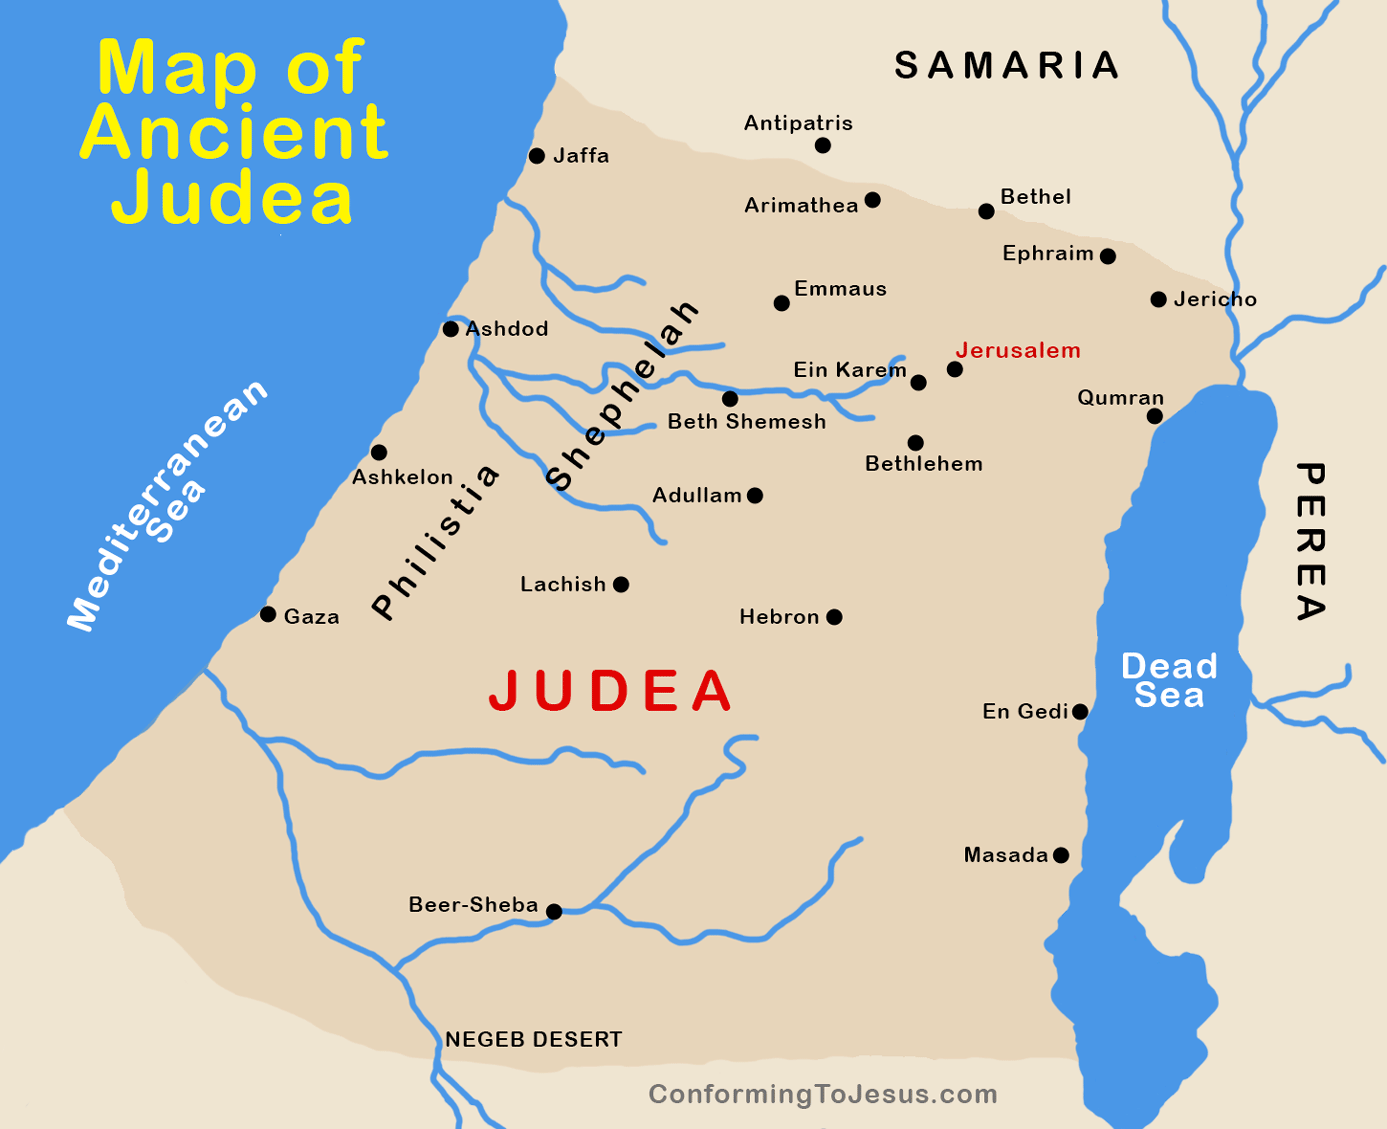 map of palestine during new testament time, samaria during jesus time, map of jesus travels, jerusalem during christ time, jerusalem map at jesus time, map of palestine during the time of christ, map at time of jesus, the world in jesus time, map of bible lands, map judea samaria galilee in jesus time, map of time of jesus, galilee during jesus time, map of palestine in new testament times, map of john the baptist ministry, map of capernaum in biblical times, map of palestine in biblical times, map of israel in christ's time, topographical map of jerusalem in jesus time, map of christ jerusalem, map of jesus ministry, on map during jesus time